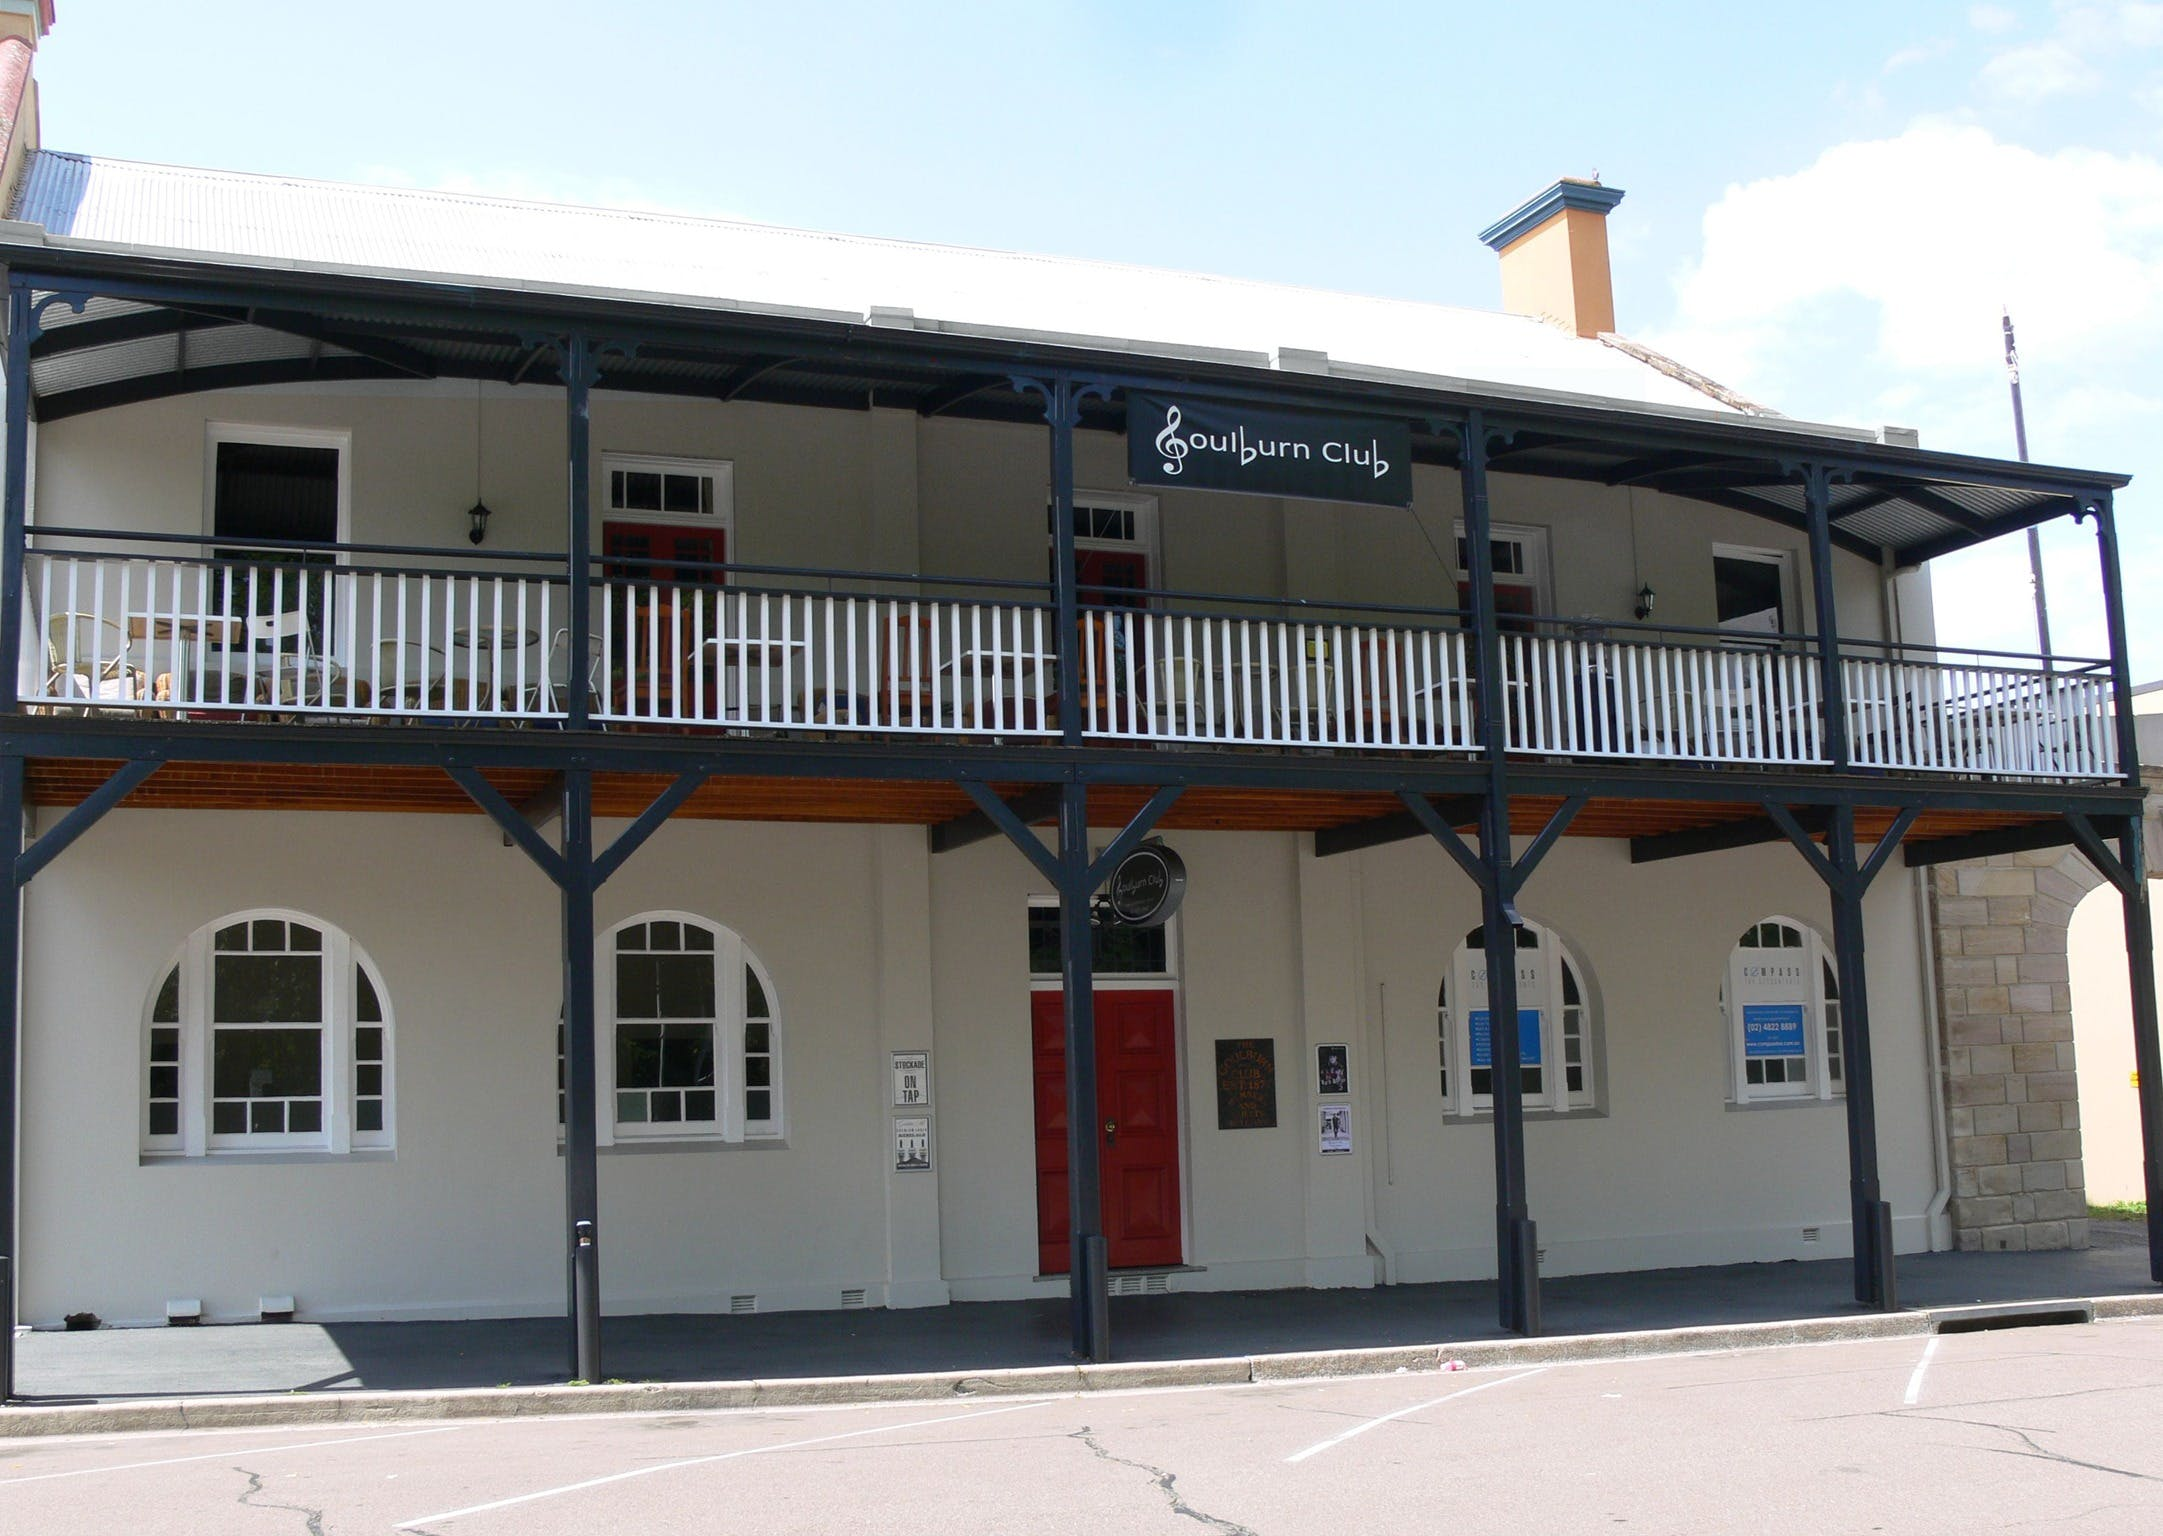 Open Mic Night at the Goulburn Club - Australia Accommodation